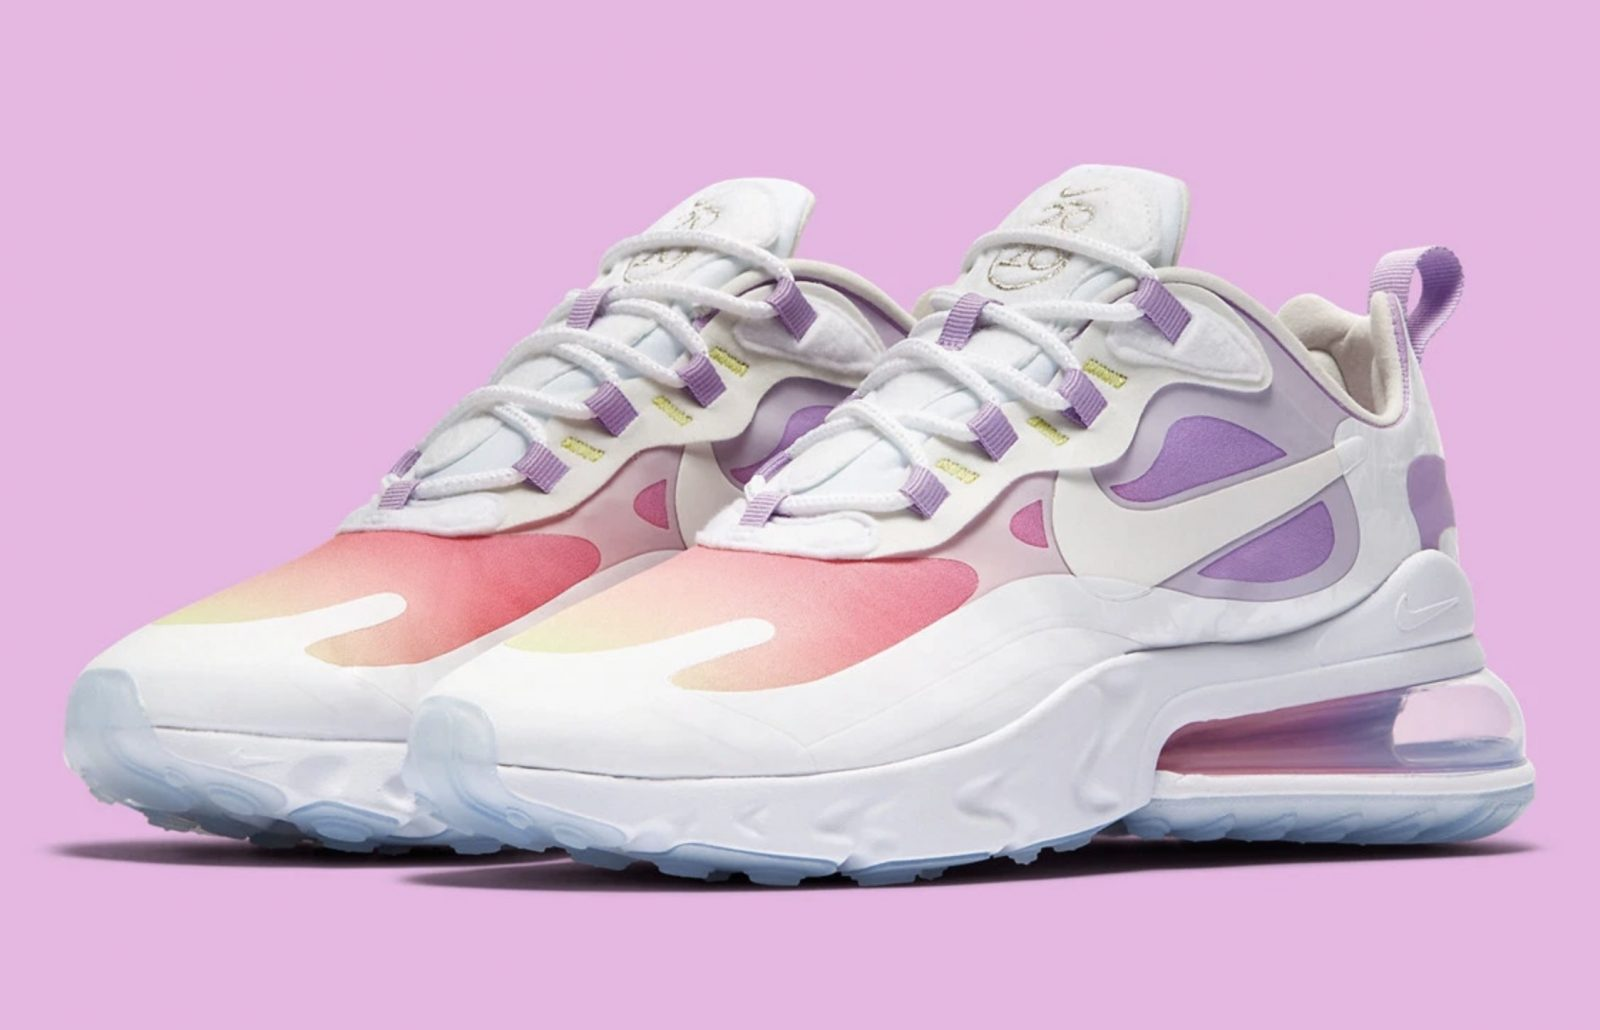 Nike-Air-Max-270-Reac ft-CU2995-911-1 5 side